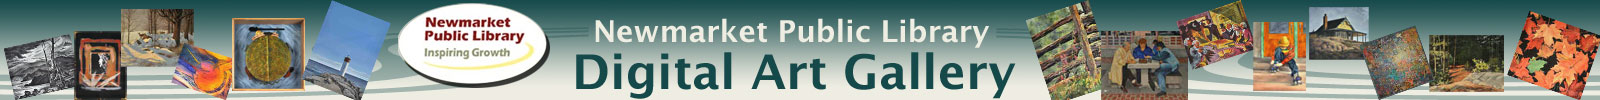 Newmarket Public Library - Digital Art Gallery